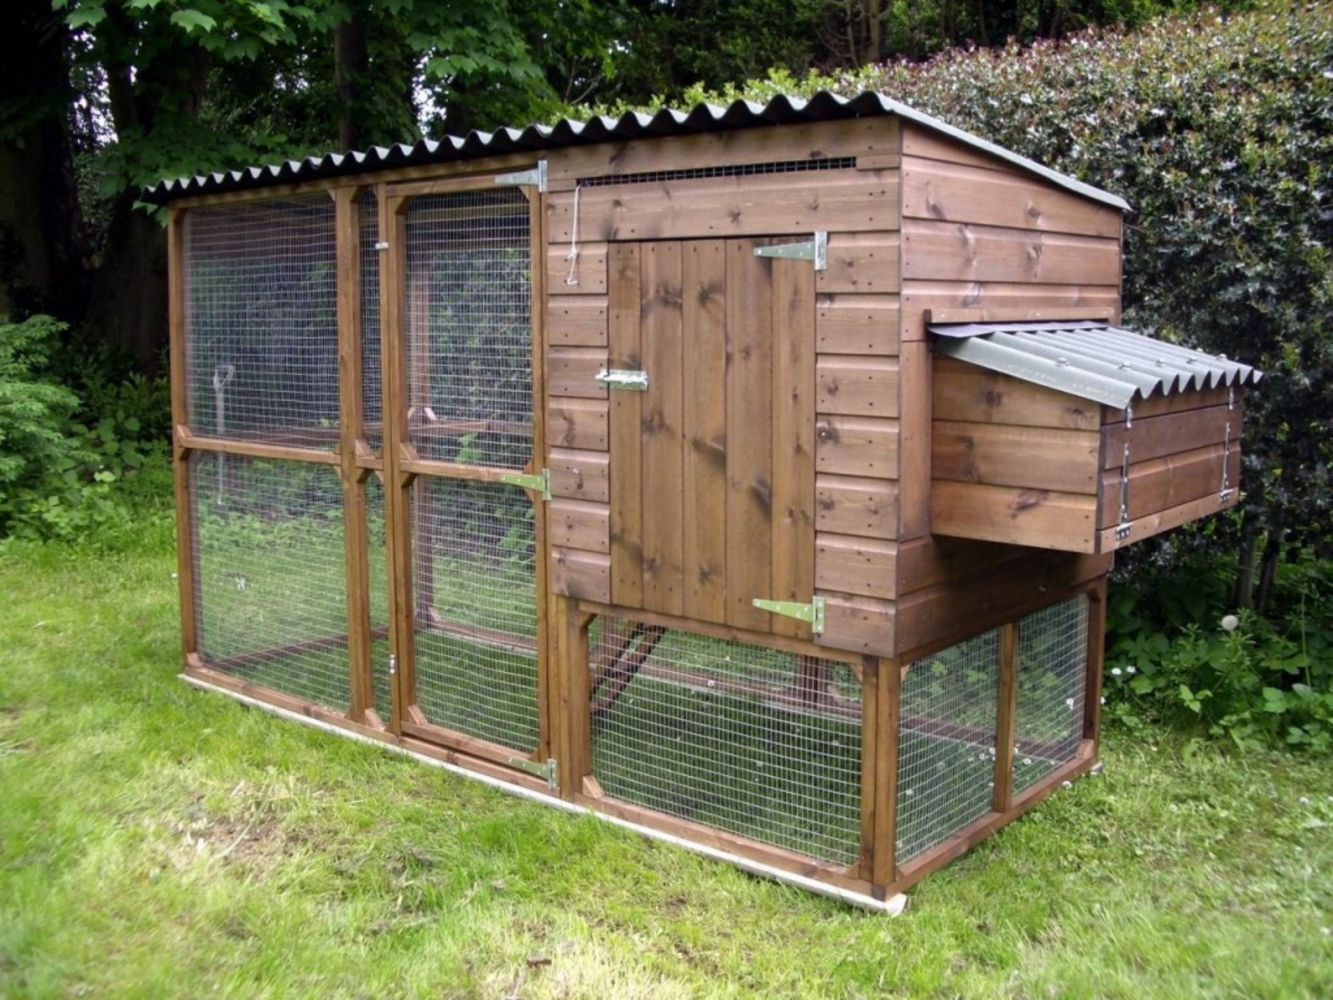 43 Best DIY Ideas for Chicken Coop for Your Backyard | Coops ...